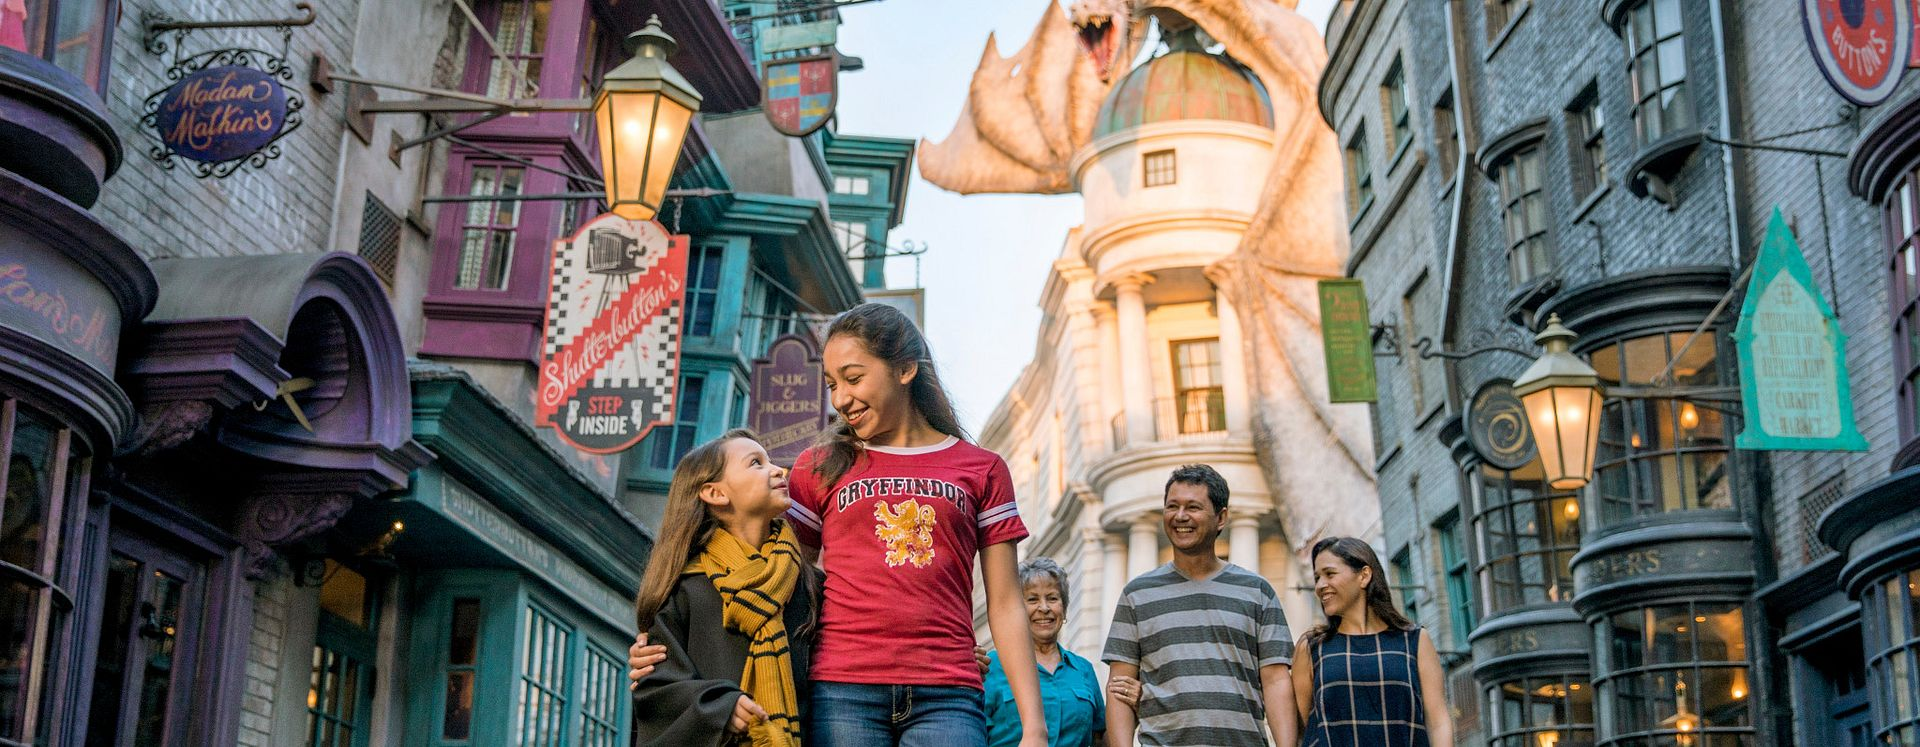 Girl with family at the Wizarding World of Harry Potter